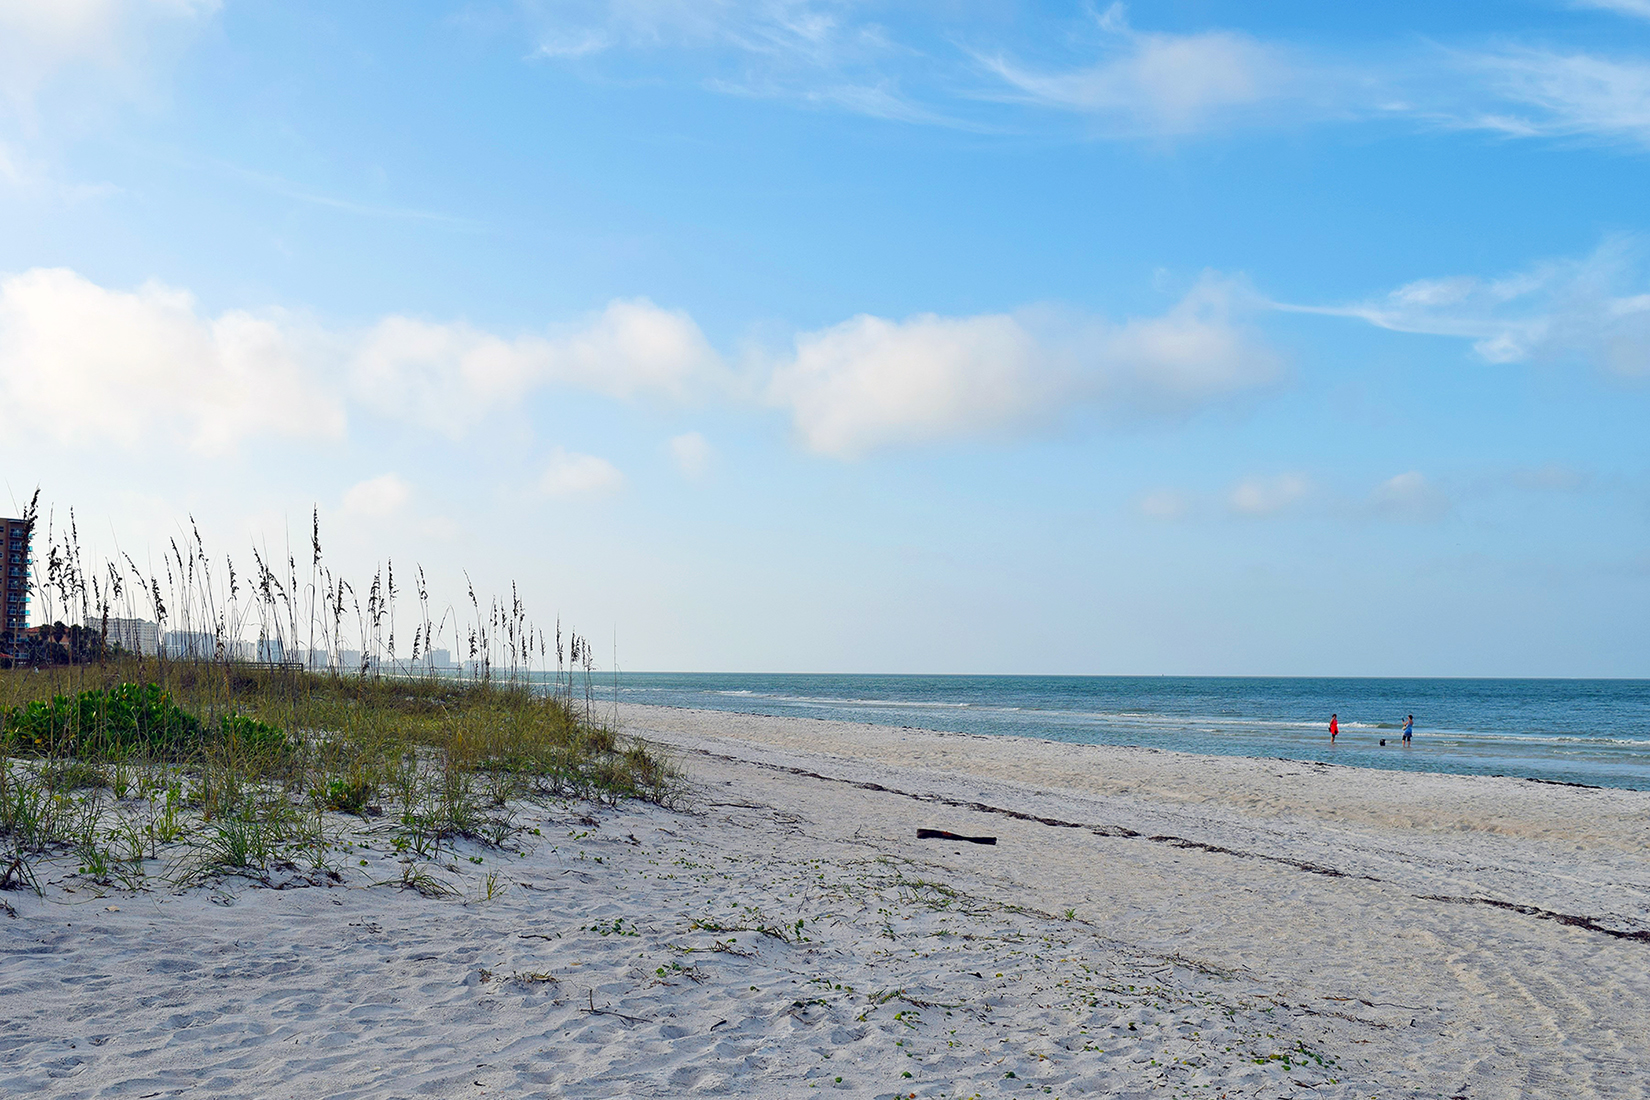 Published in Florida Water Resources Journal: Keys to Planning, Designing, and Permitting Resilient Coastal Restoration Projects